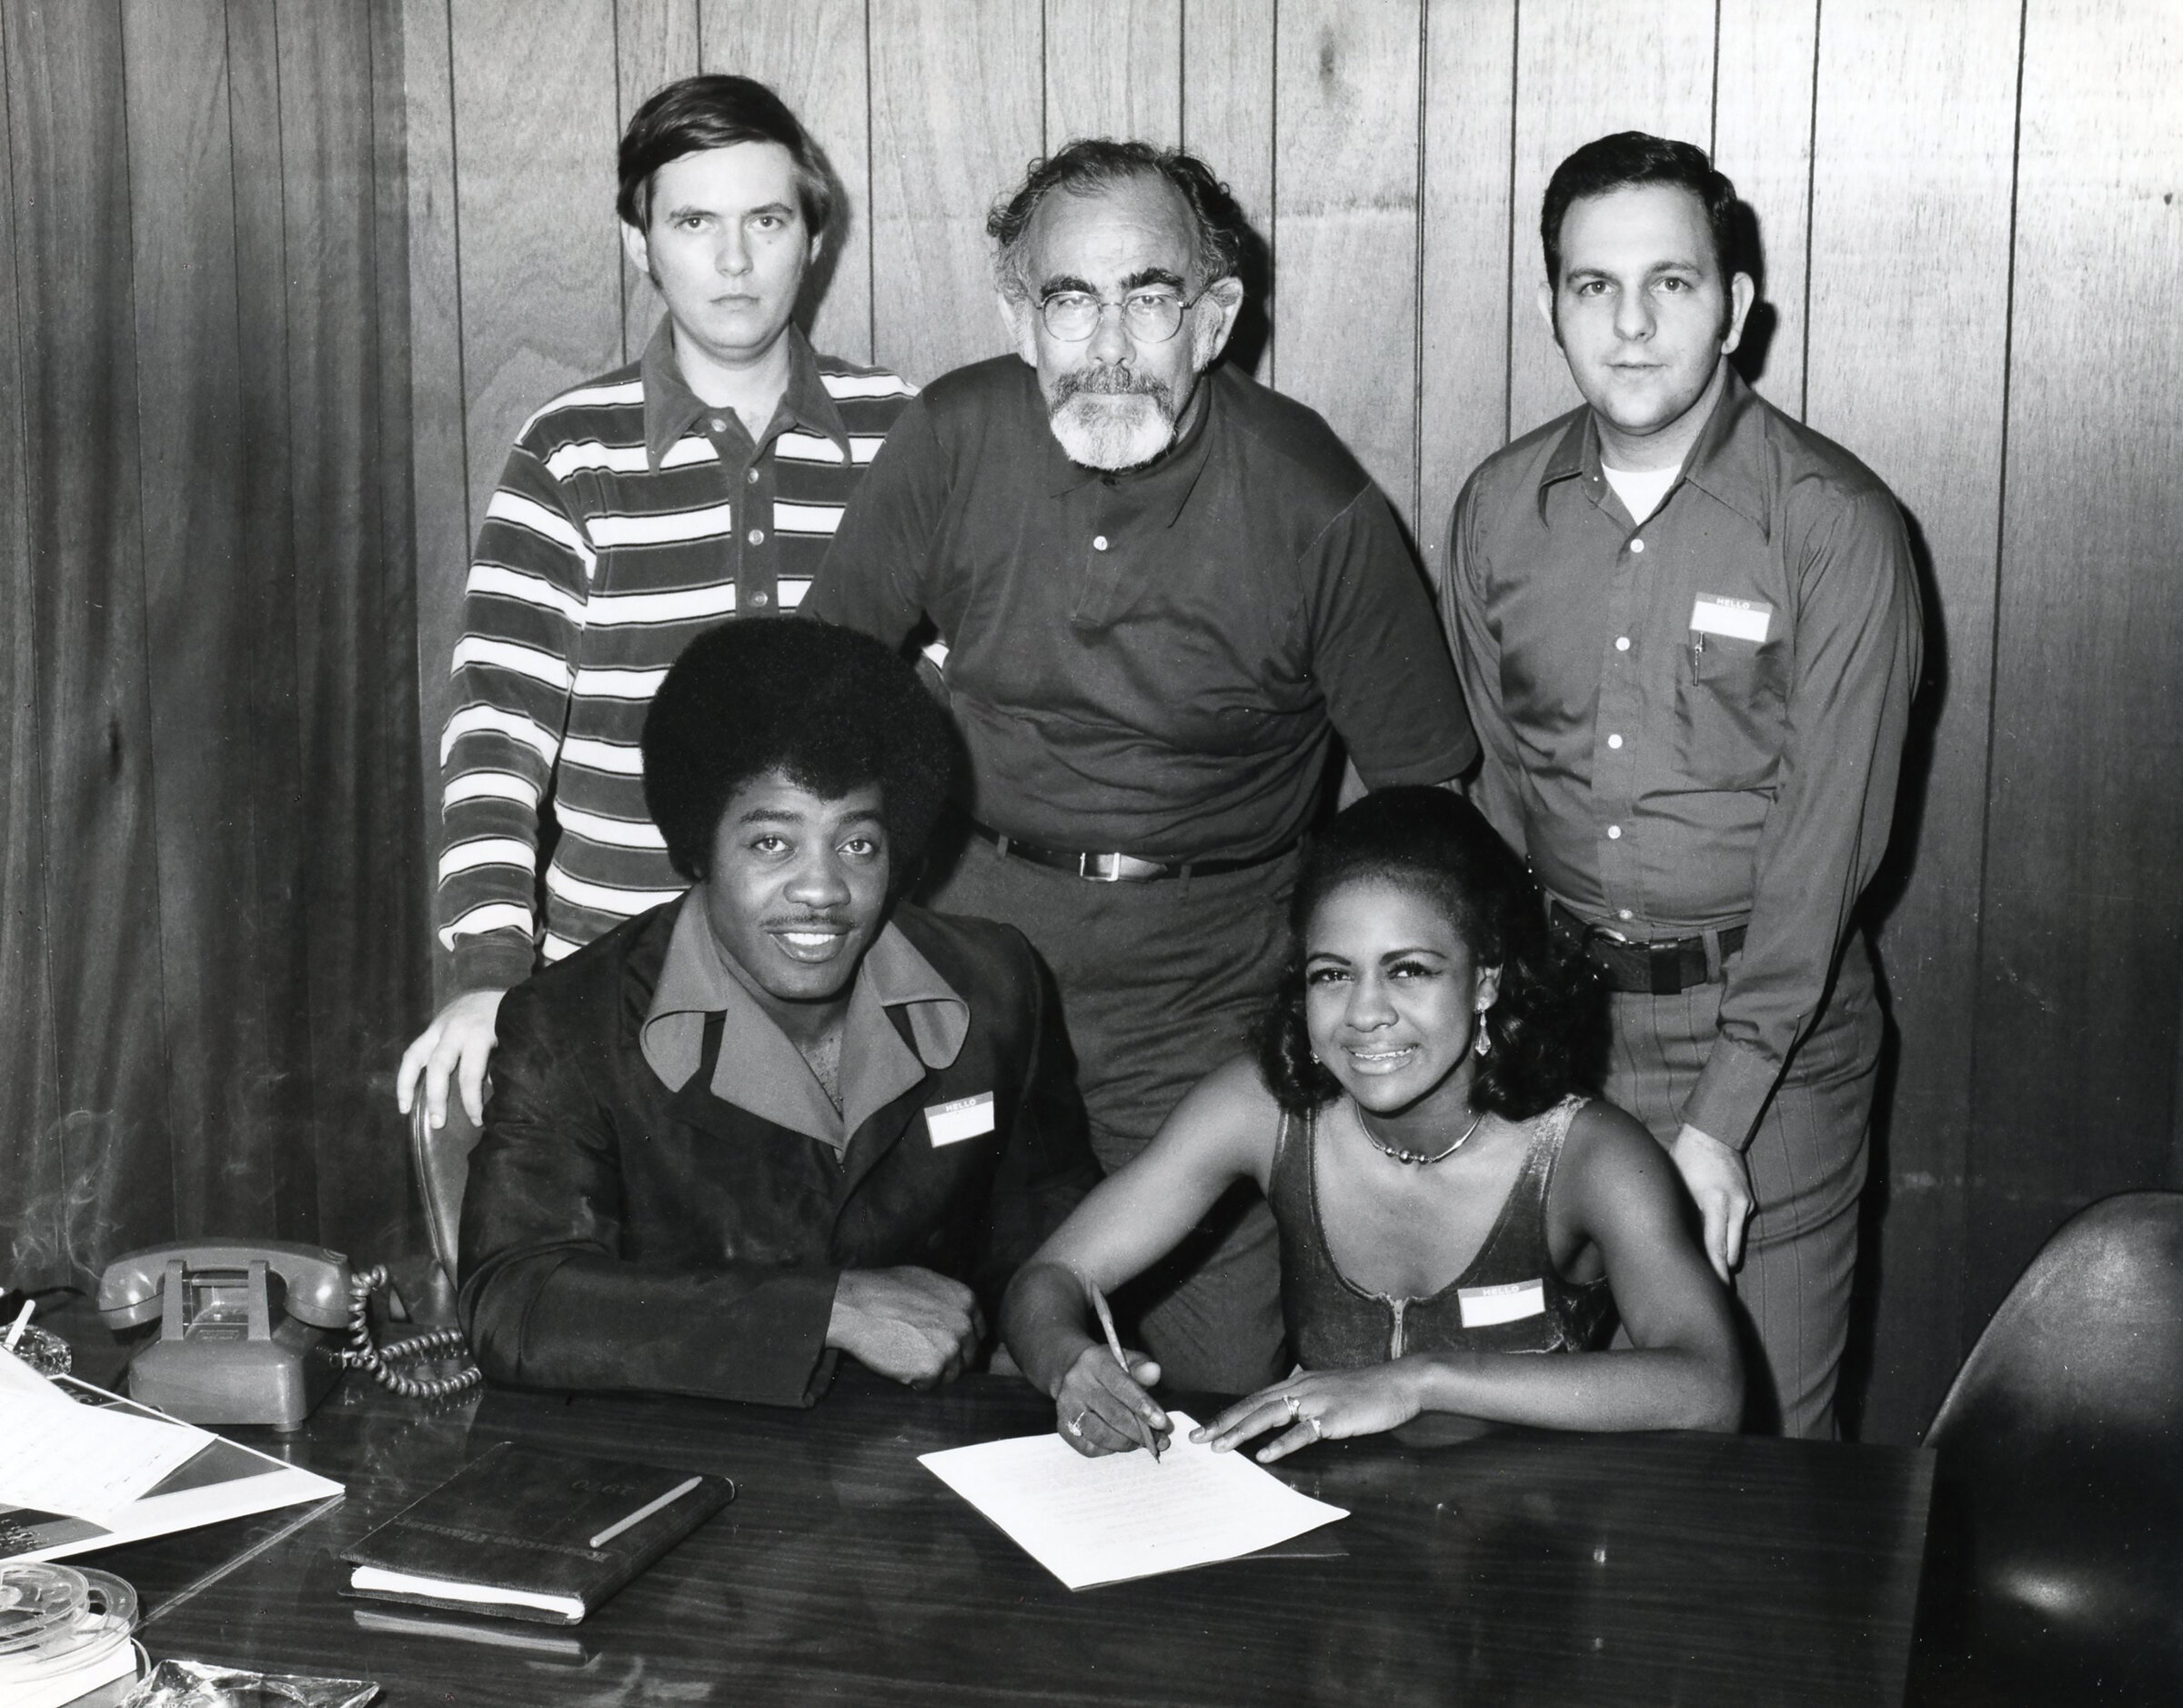 Left to right, top to bottom: Tommy Couch, Jerry Wexler, Mitchell Malouf, Jo Jo Benson ,and Peggy Scott.